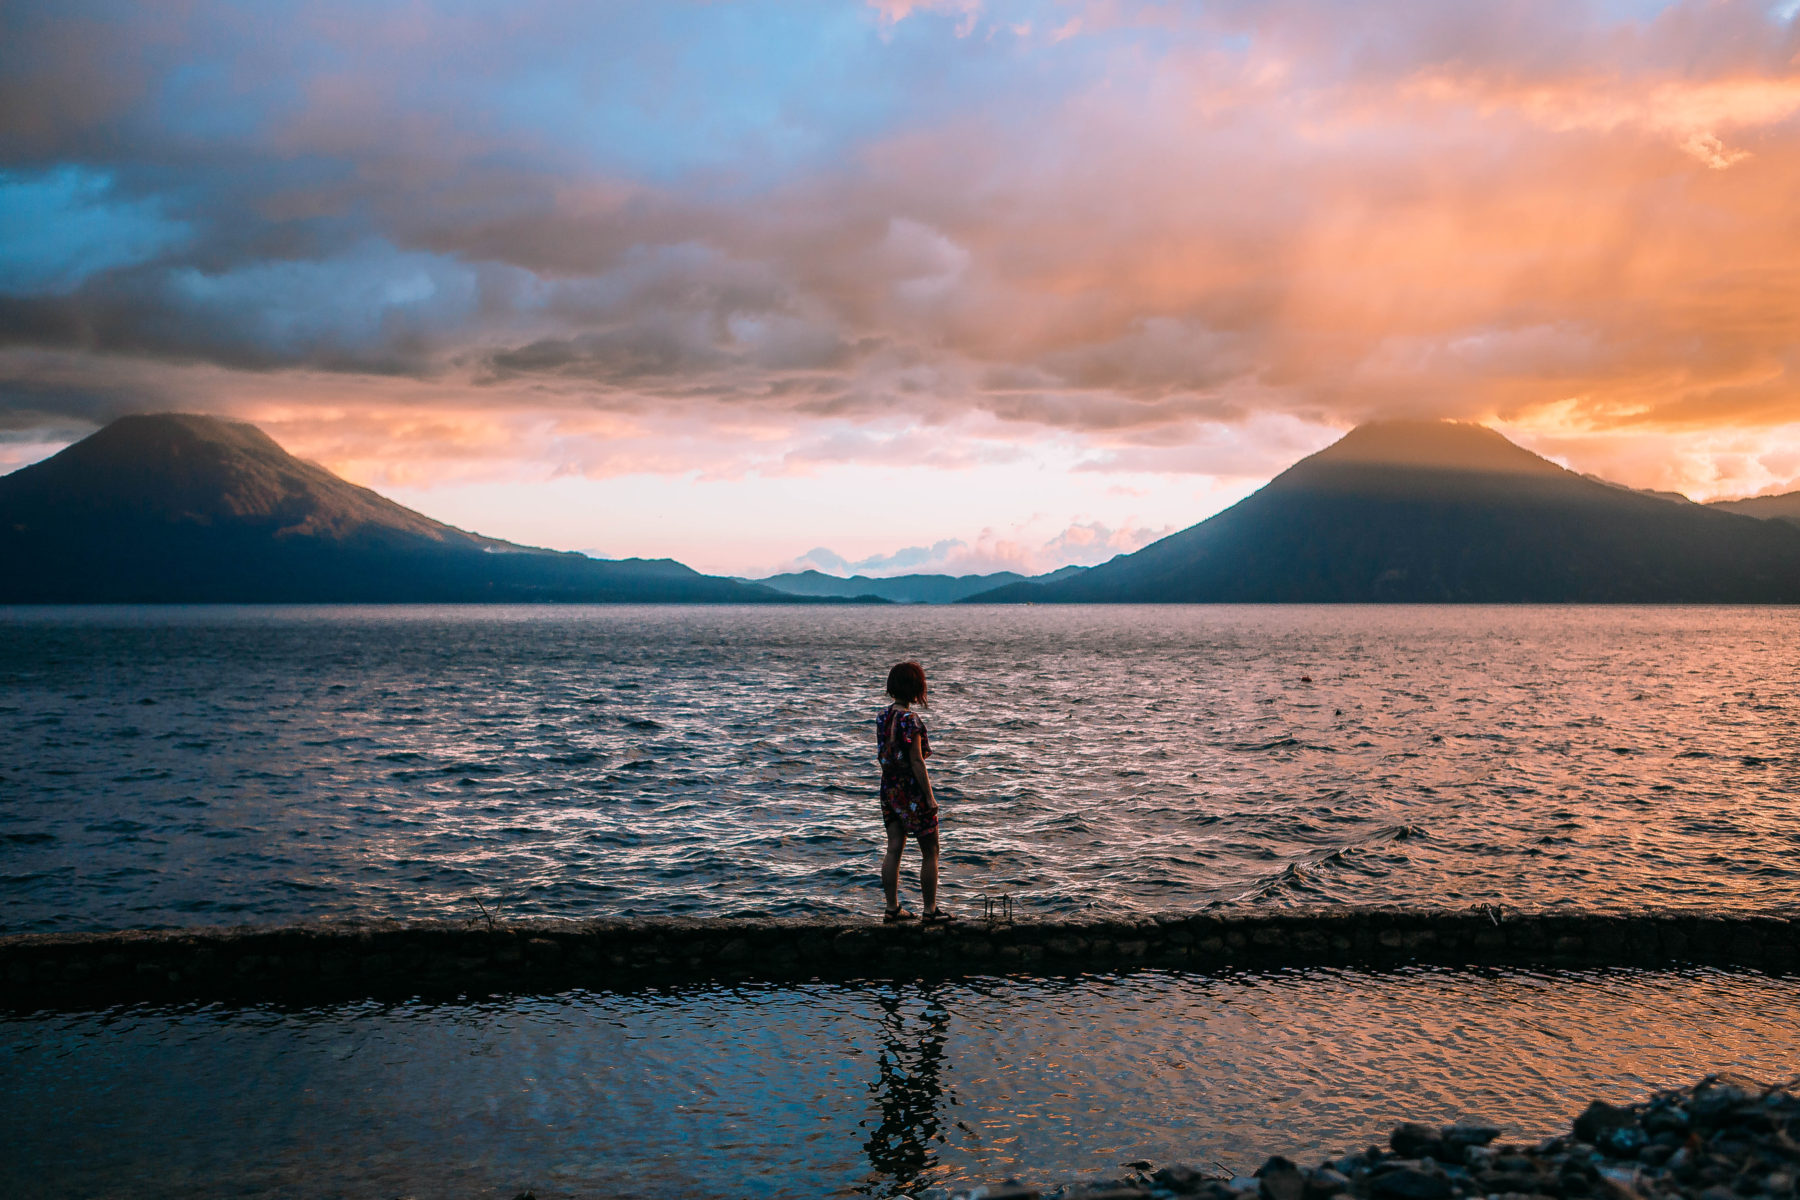 guatemala lake atitlan lago central america most beautiful lake in the world volcanoes sky on fire sunset